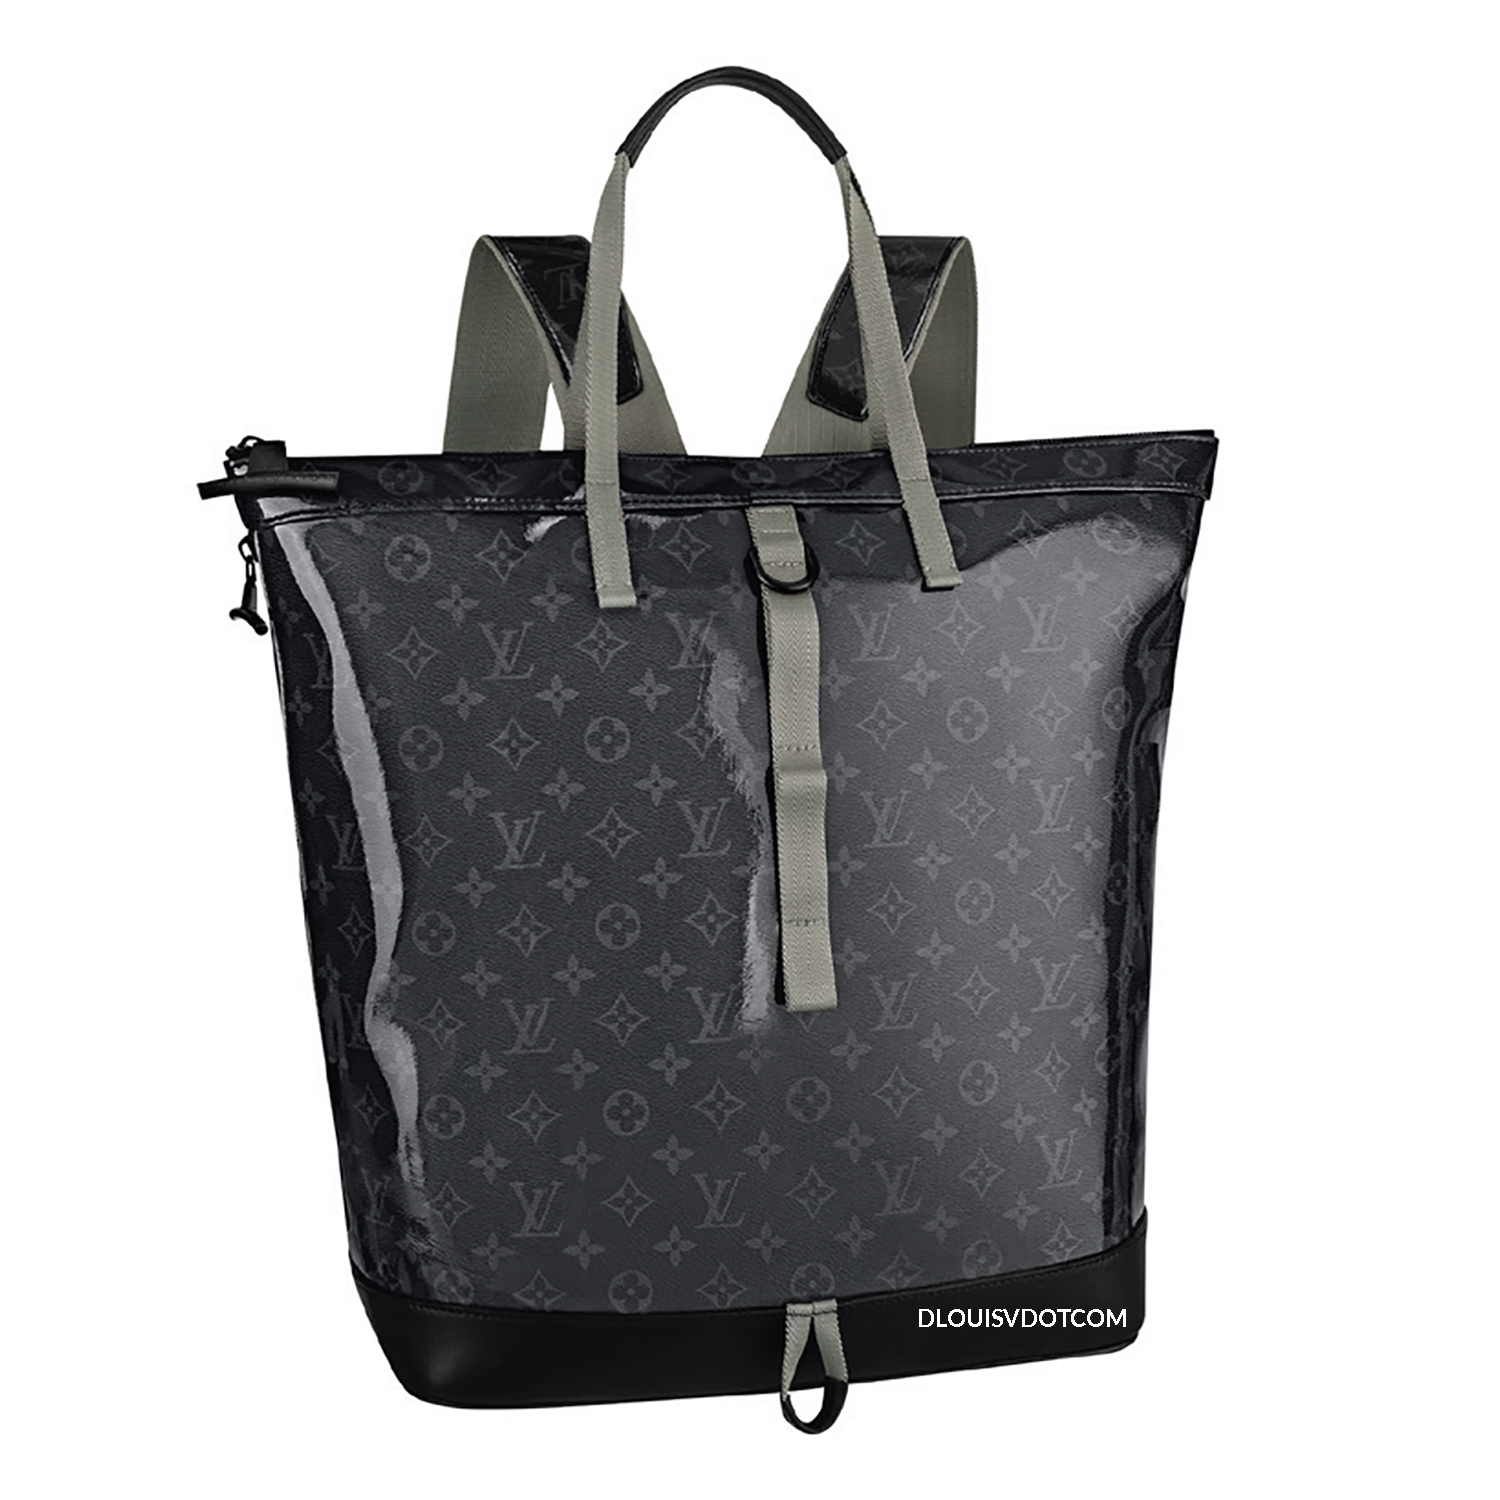 TOTE BACKPACK - €2510 $3400M43900MONOGRAM eclipsd GLAZE